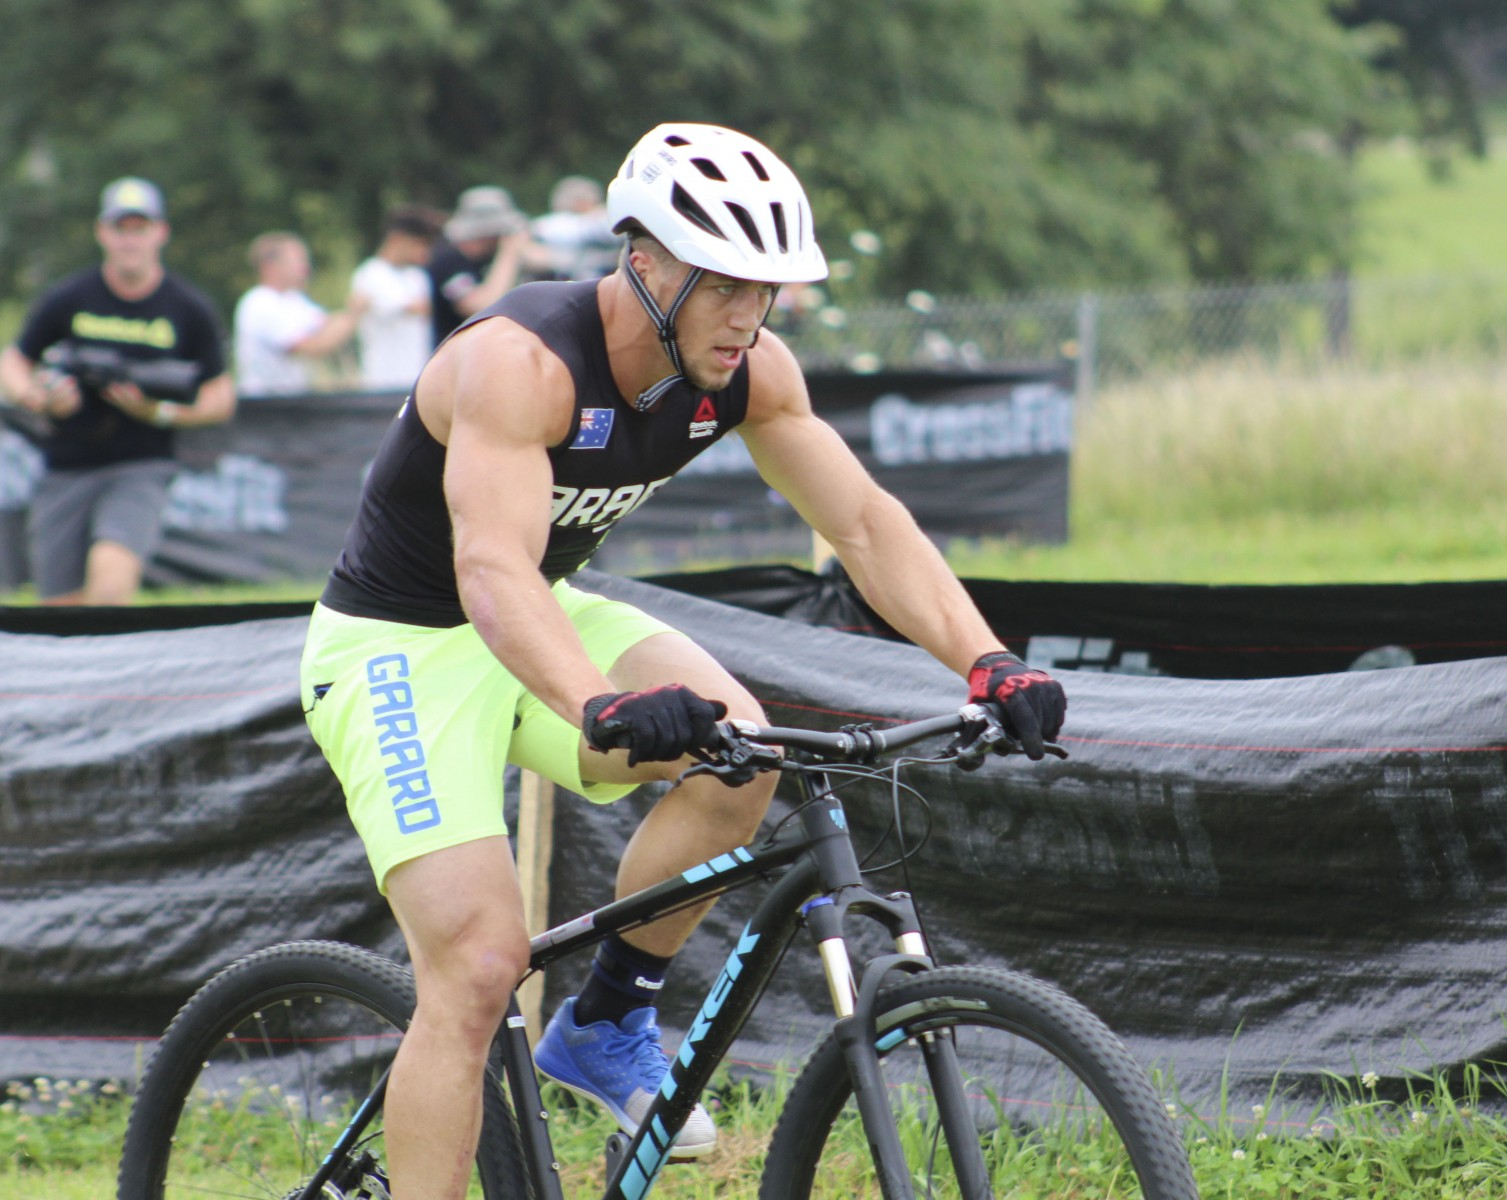 Ricky Garard On Winning 2017 Crossfit Games Cyclocross